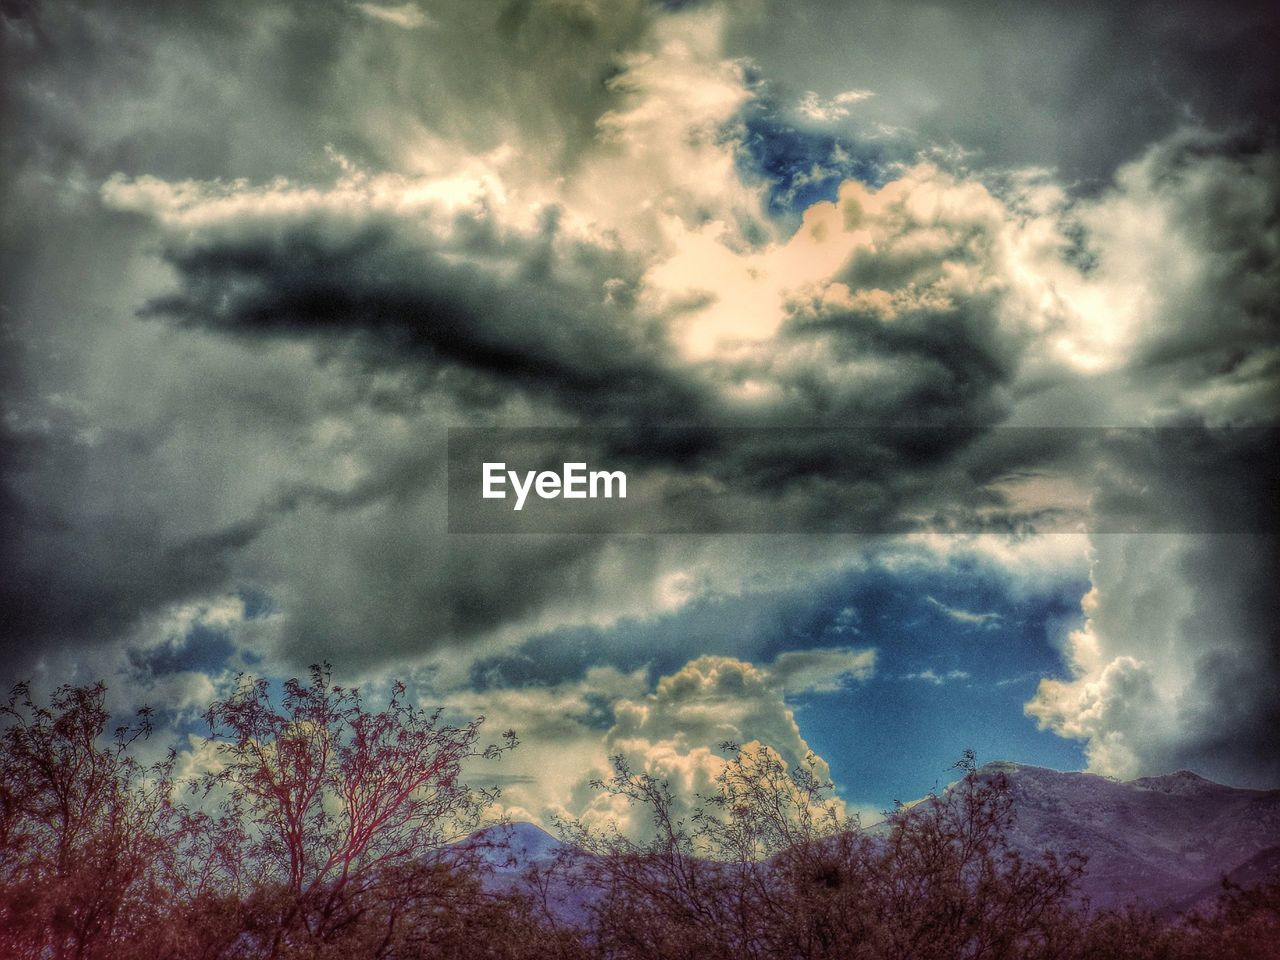 sky, nature, cloud - sky, weather, beauty in nature, cloudscape, dramatic sky, storm cloud, atmospheric mood, scenics, tranquility, tranquil scene, majestic, outdoors, storm, low angle view, silhouette, no people, awe, day, landscape, tree